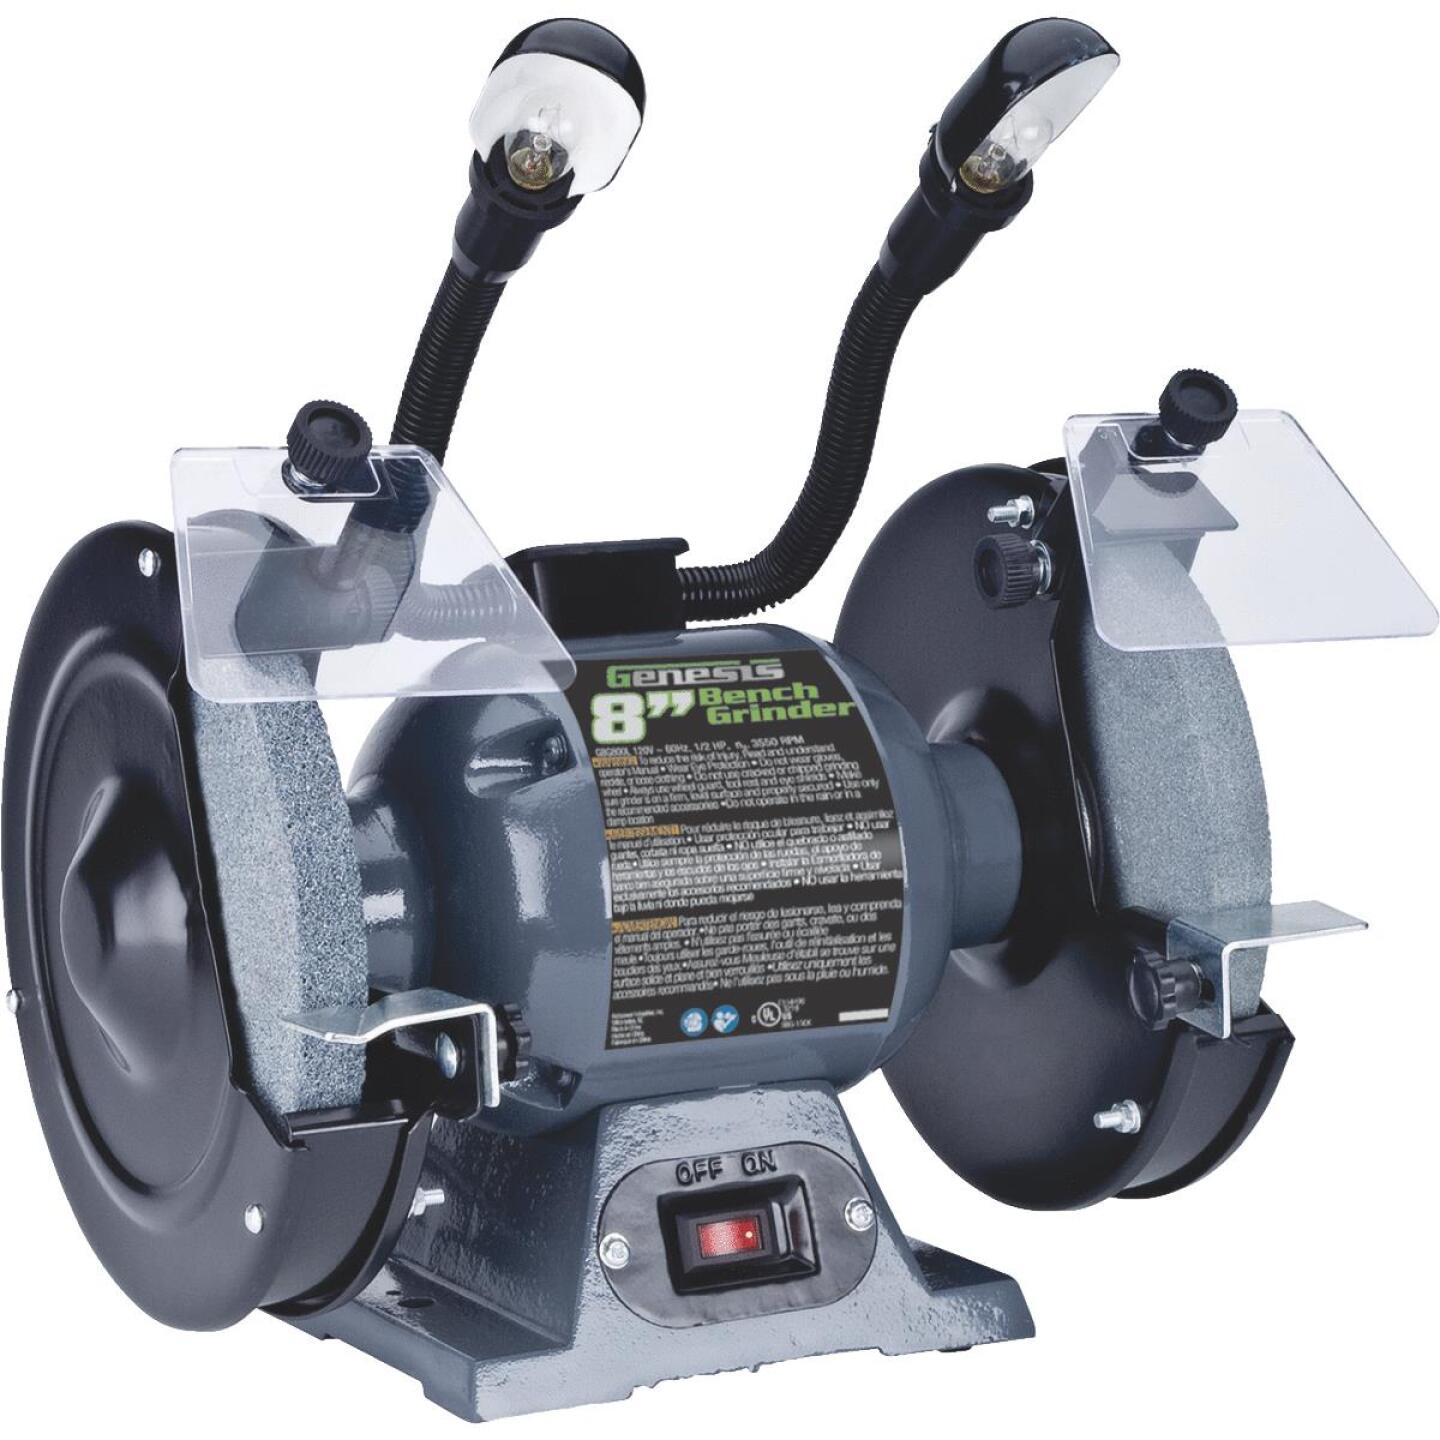 Genesis 8 In. 3/4 HP Bench Grinder with Lights Image 1